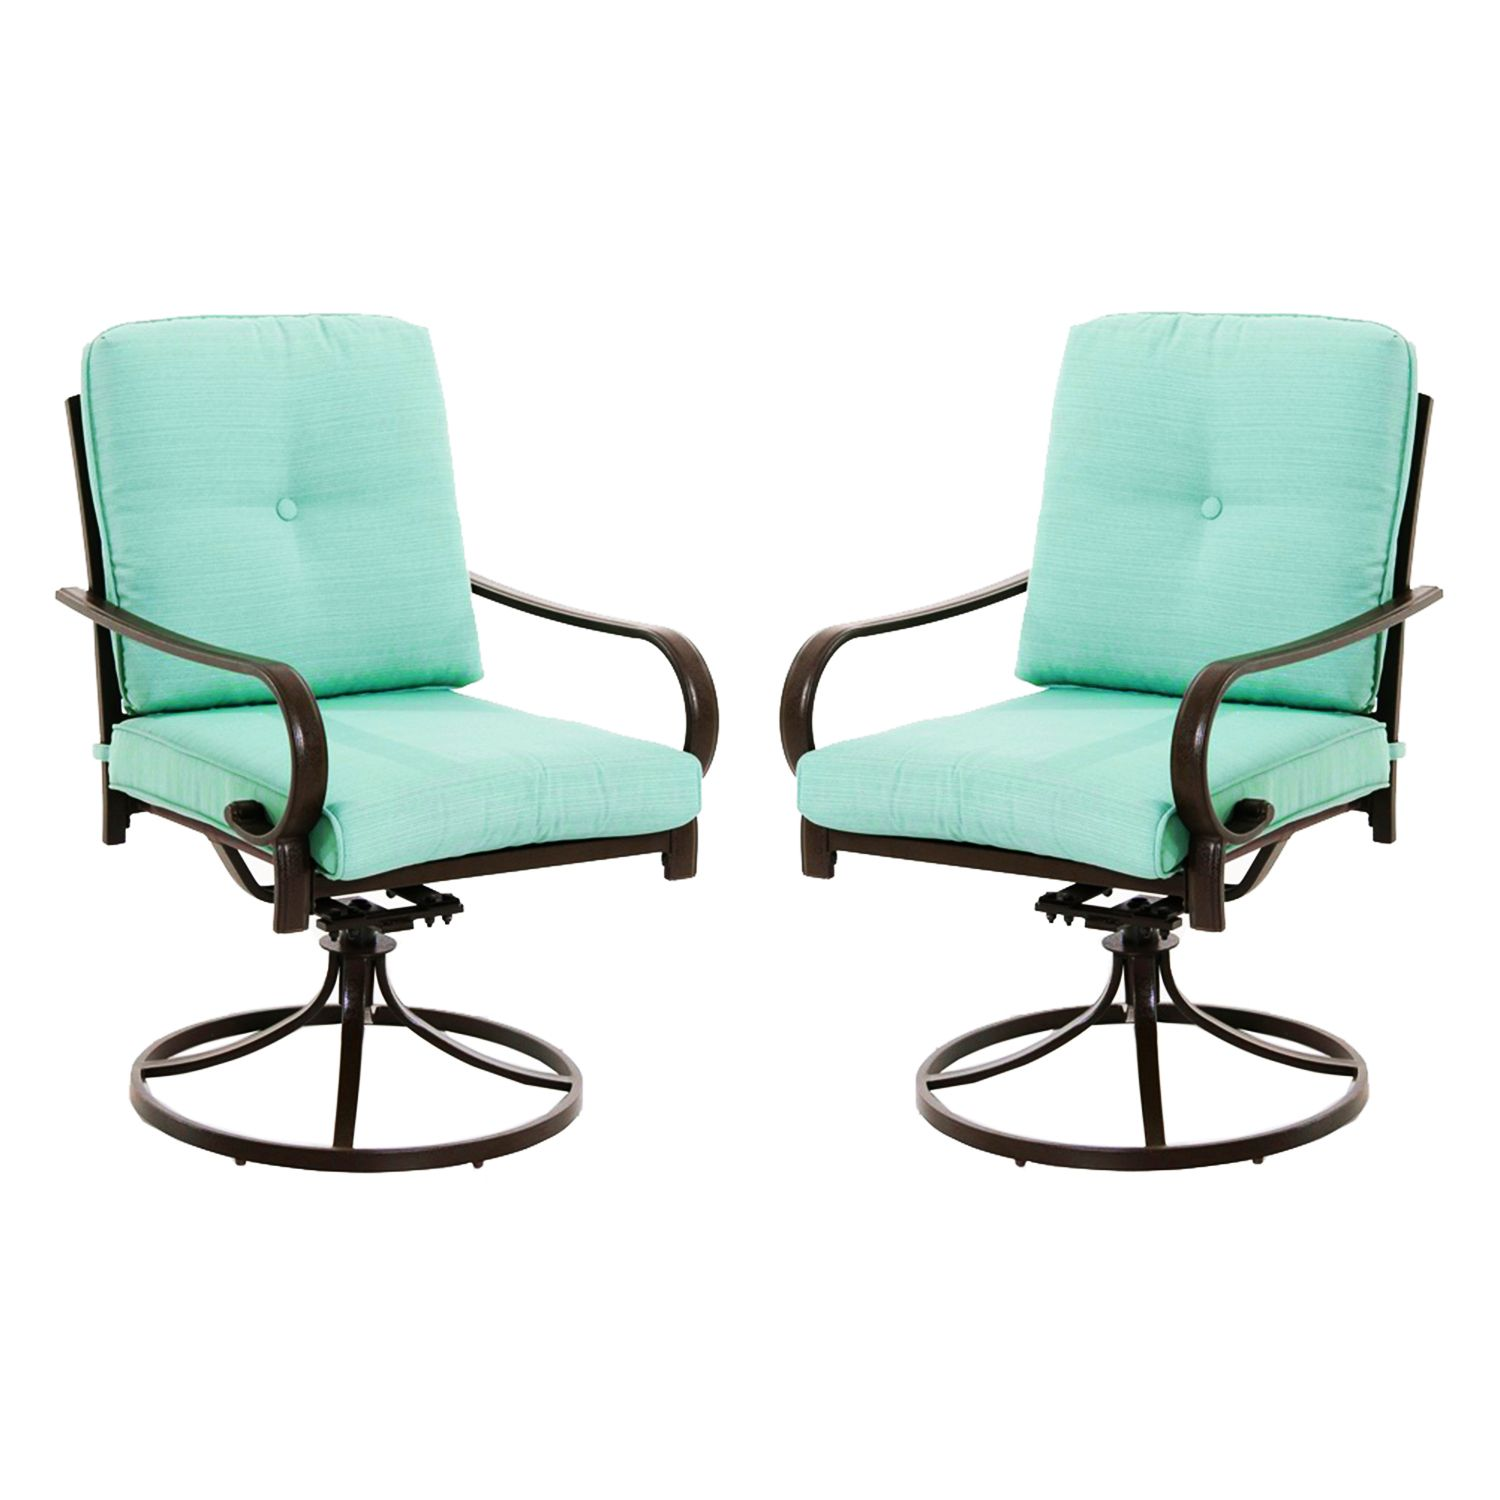 SONOMA Goods For Life™ Claremont Swivel Patio Chair 2 Piece Set